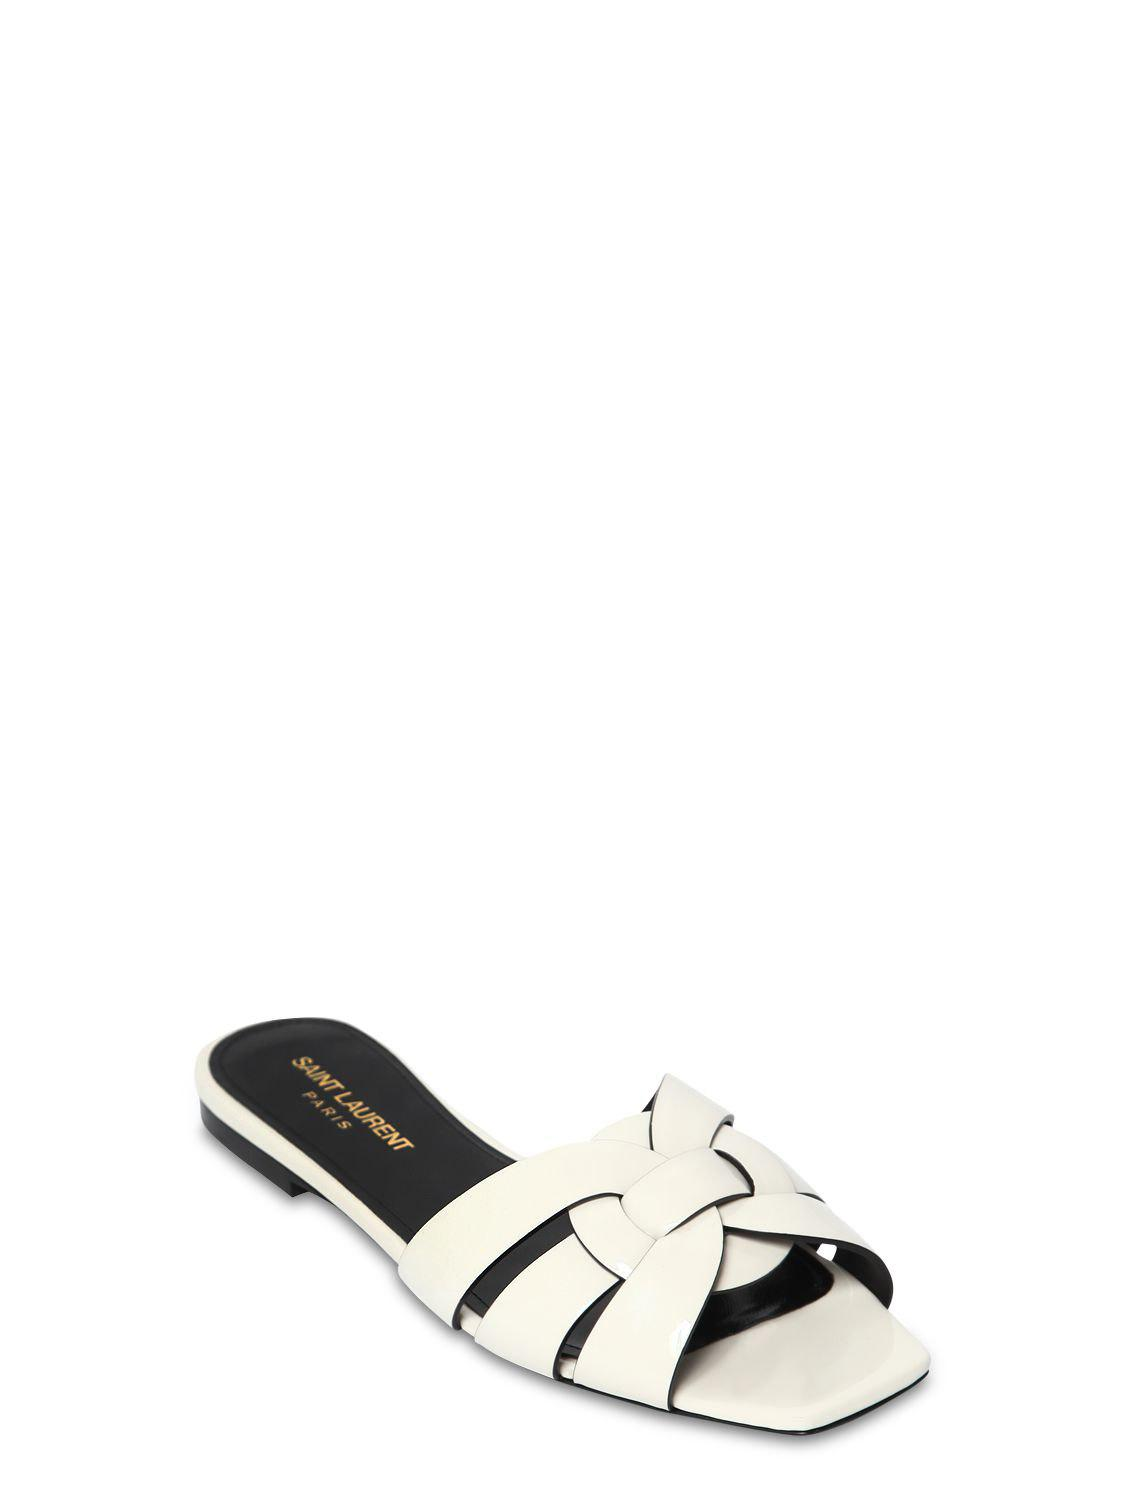 fcaa60386eb Lyst - Saint Laurent 10mm Nu Pied Patent Leather Sandals in White - Save 40%